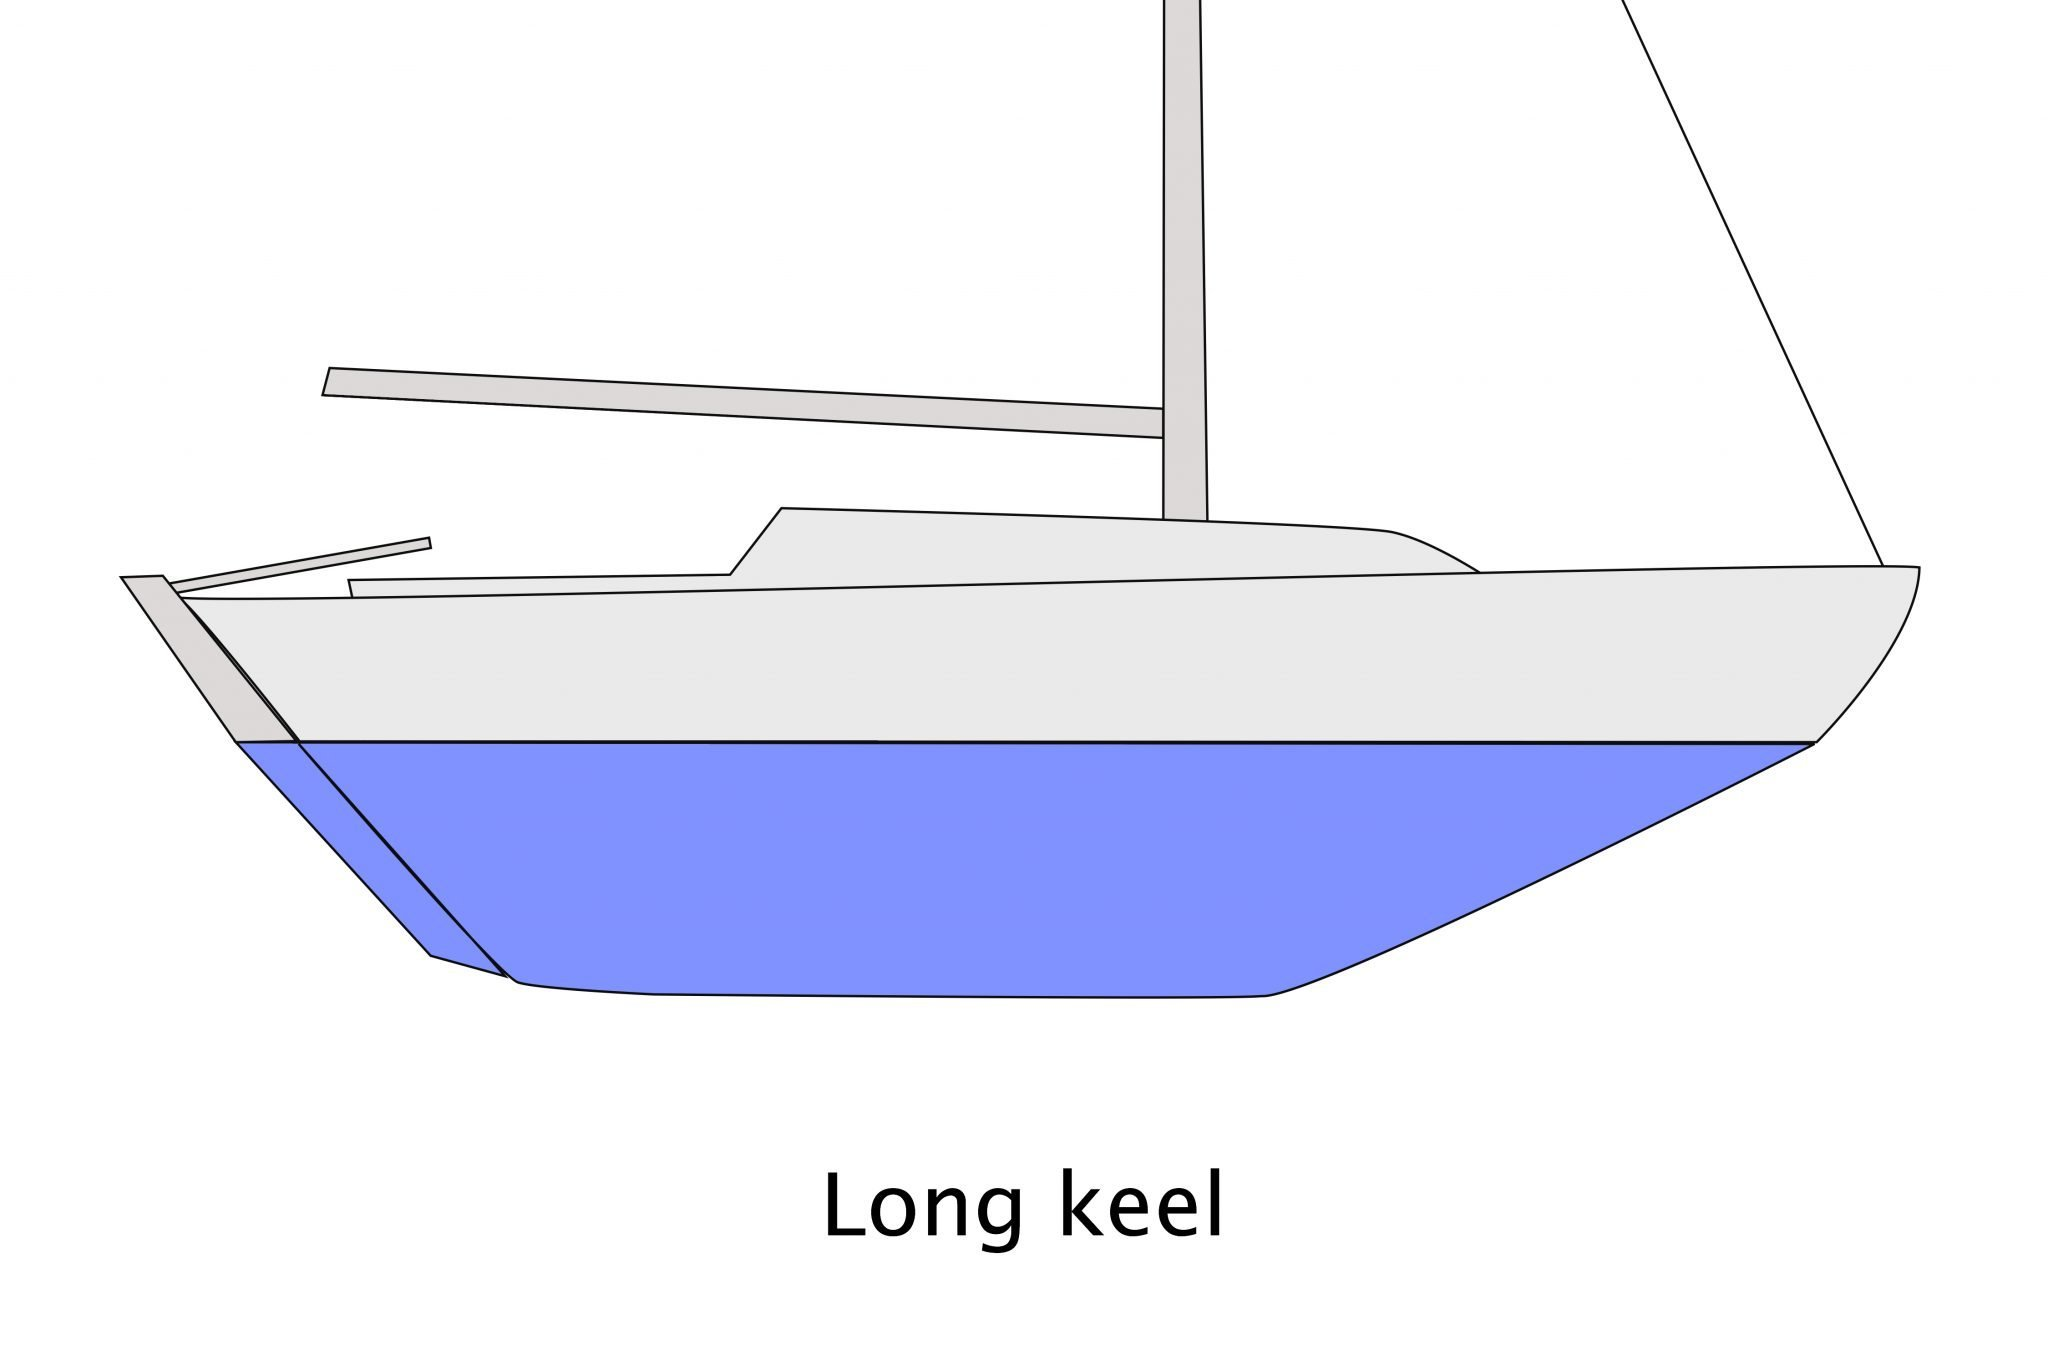 Keel design - options to consider when choosing a yacht